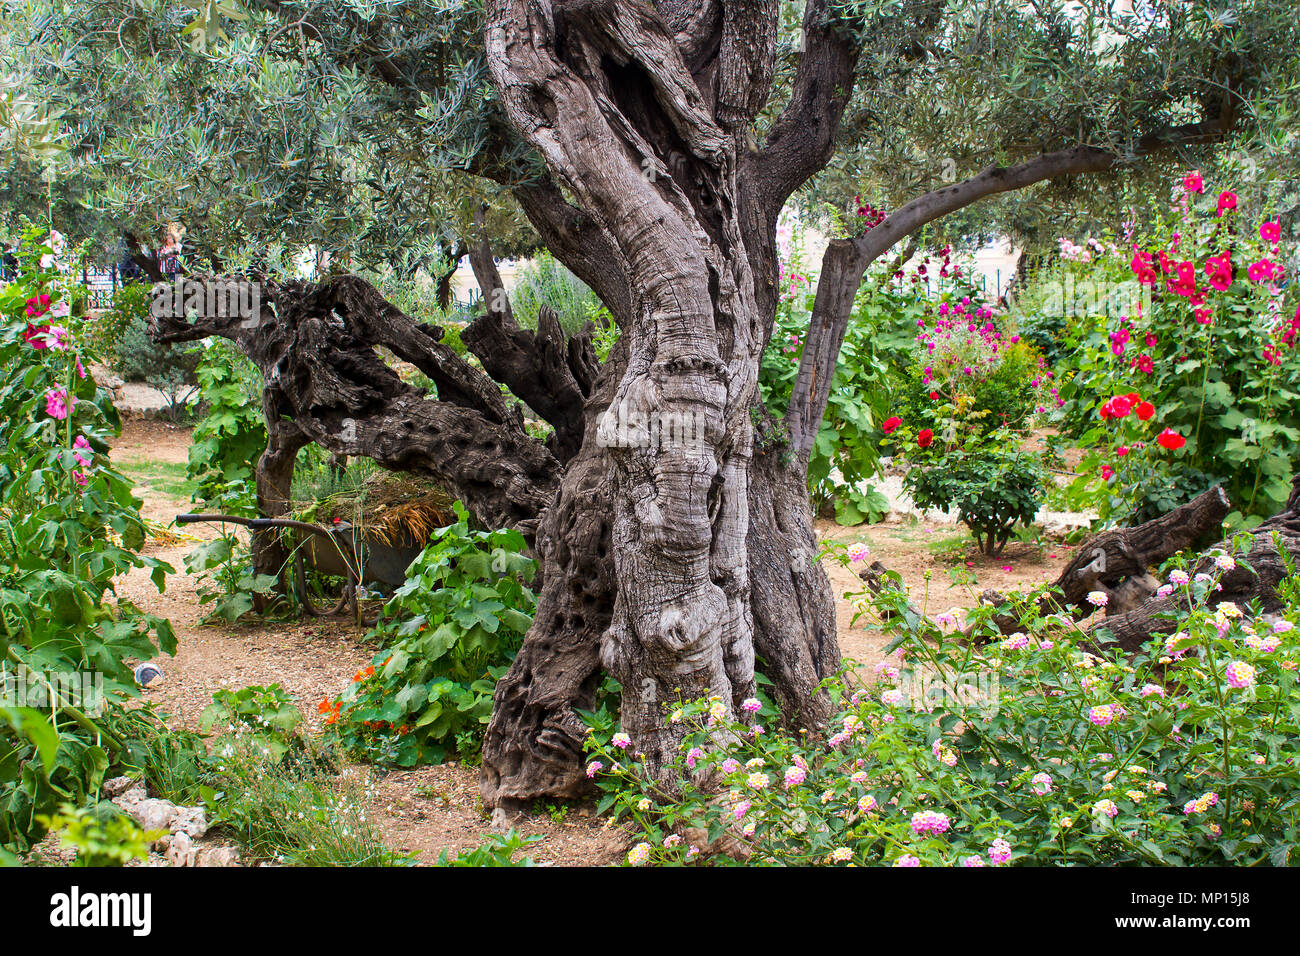 Ancient Olive Trees and young herbaceous plants living side by side in the historic Garden of Getshemene the scene of Jesus Christ's agonising prayer - Stock Image